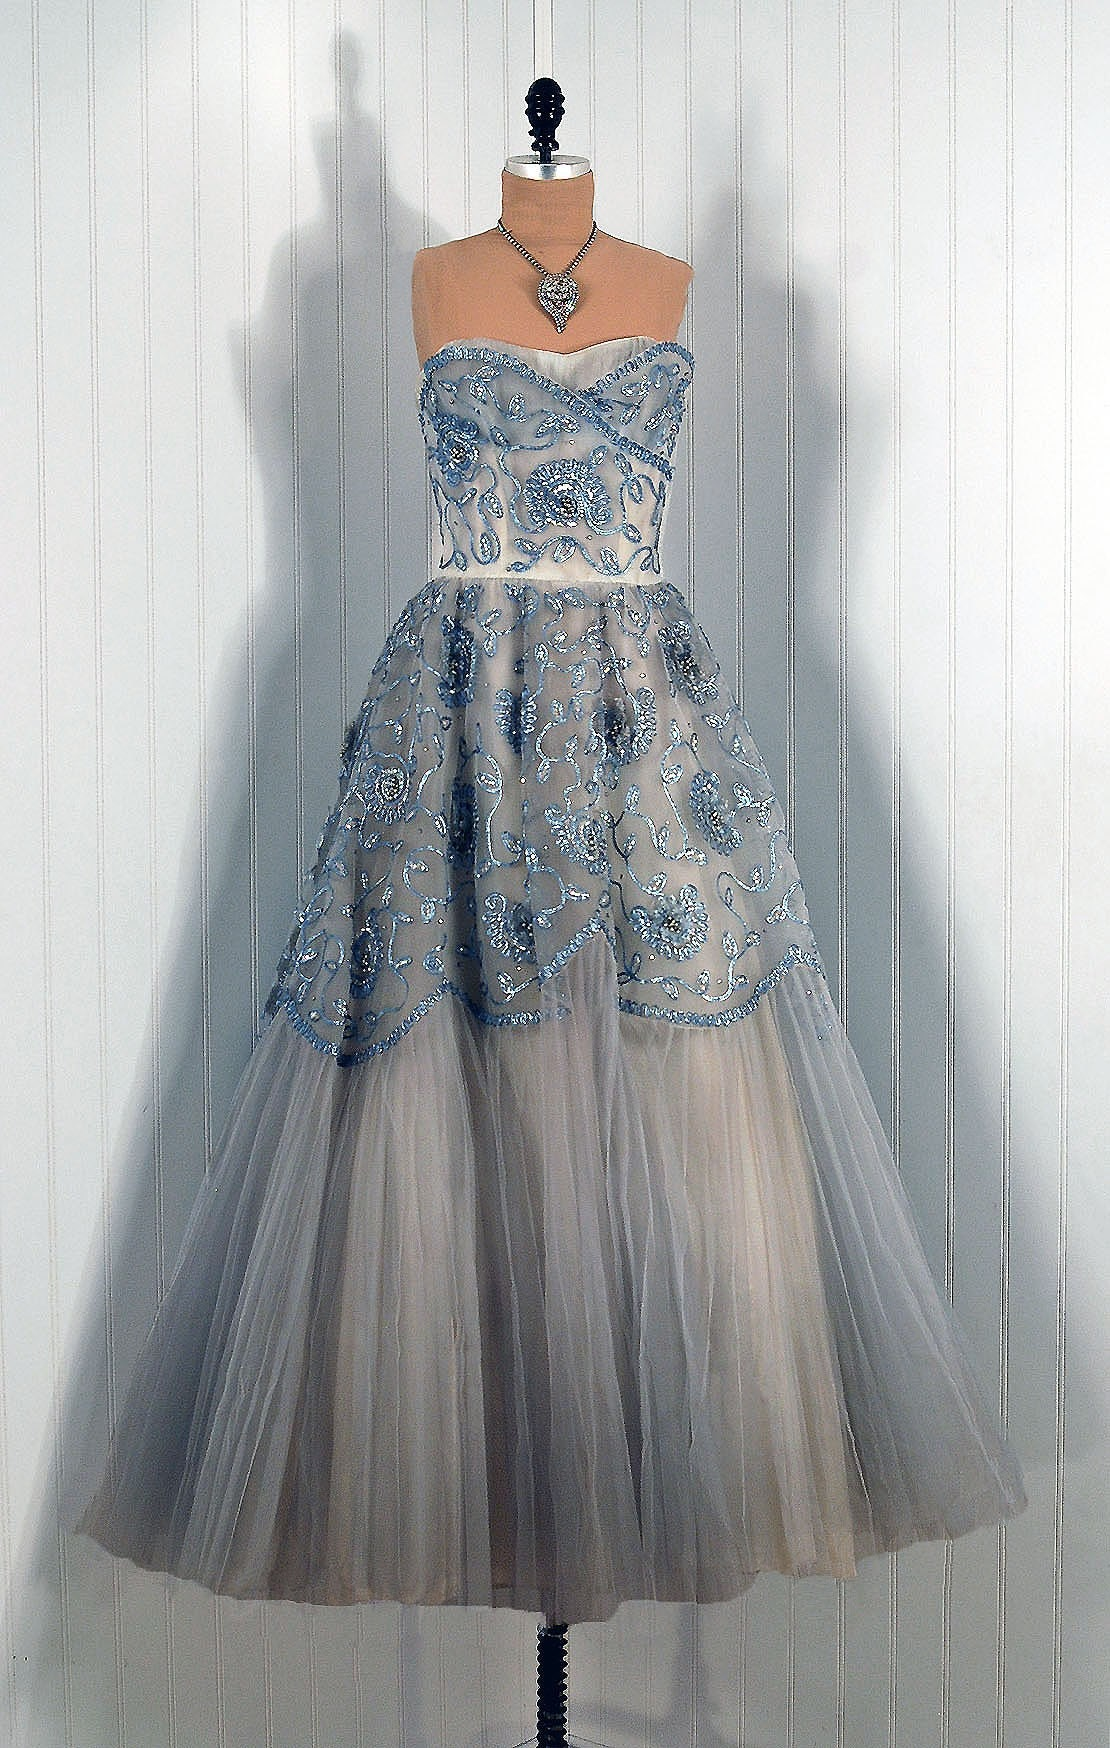 1950's Vintage Ceil Chapman Couture Strapless Steel-Blue Beaded Sequin and Rhinestone Tulle Circle-Skirt Princess Wedding Party Gown Dress